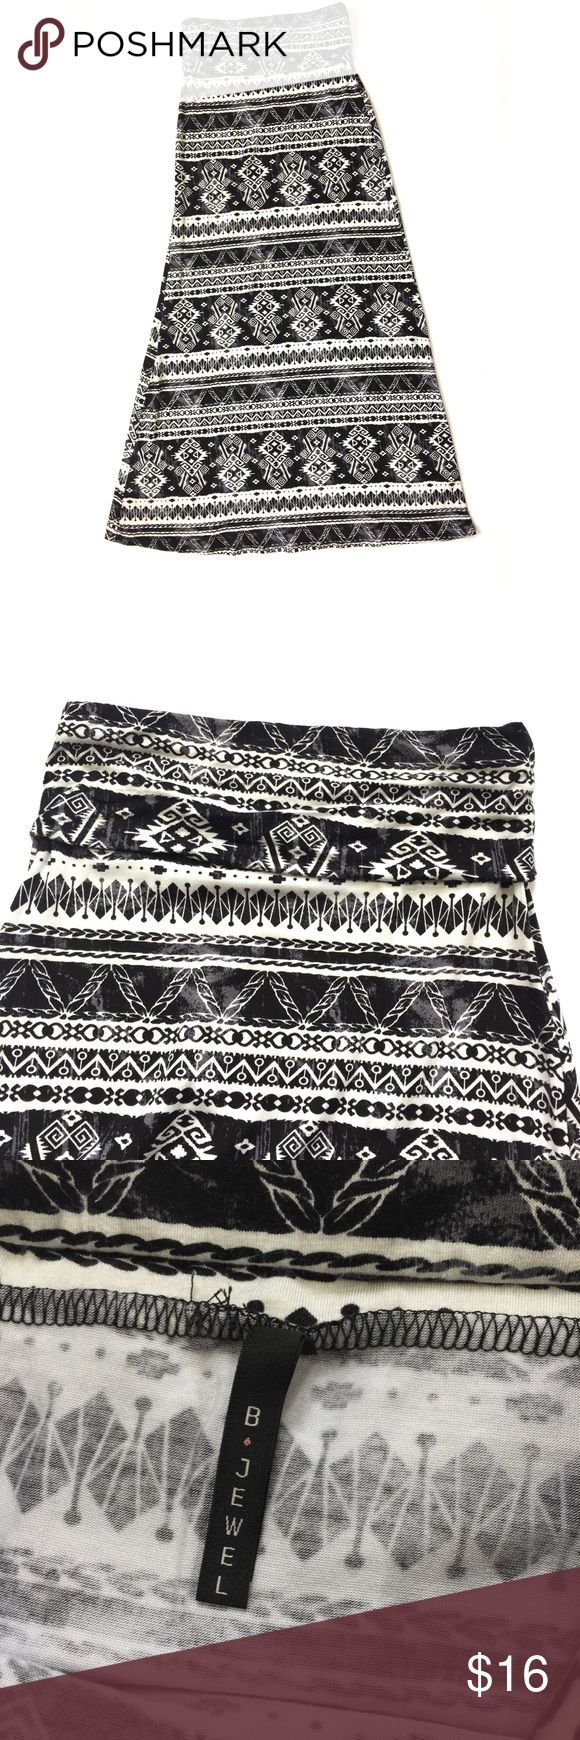 "B Jewel tribal maxi skirt Size Small - B Jewel - Black/white/gray maxi skirt.  Waist laying flat measures 12"" across and has elastic inside fold over waist. Length 39"".  In excellent condition. B Jewel Skirts Maxi"